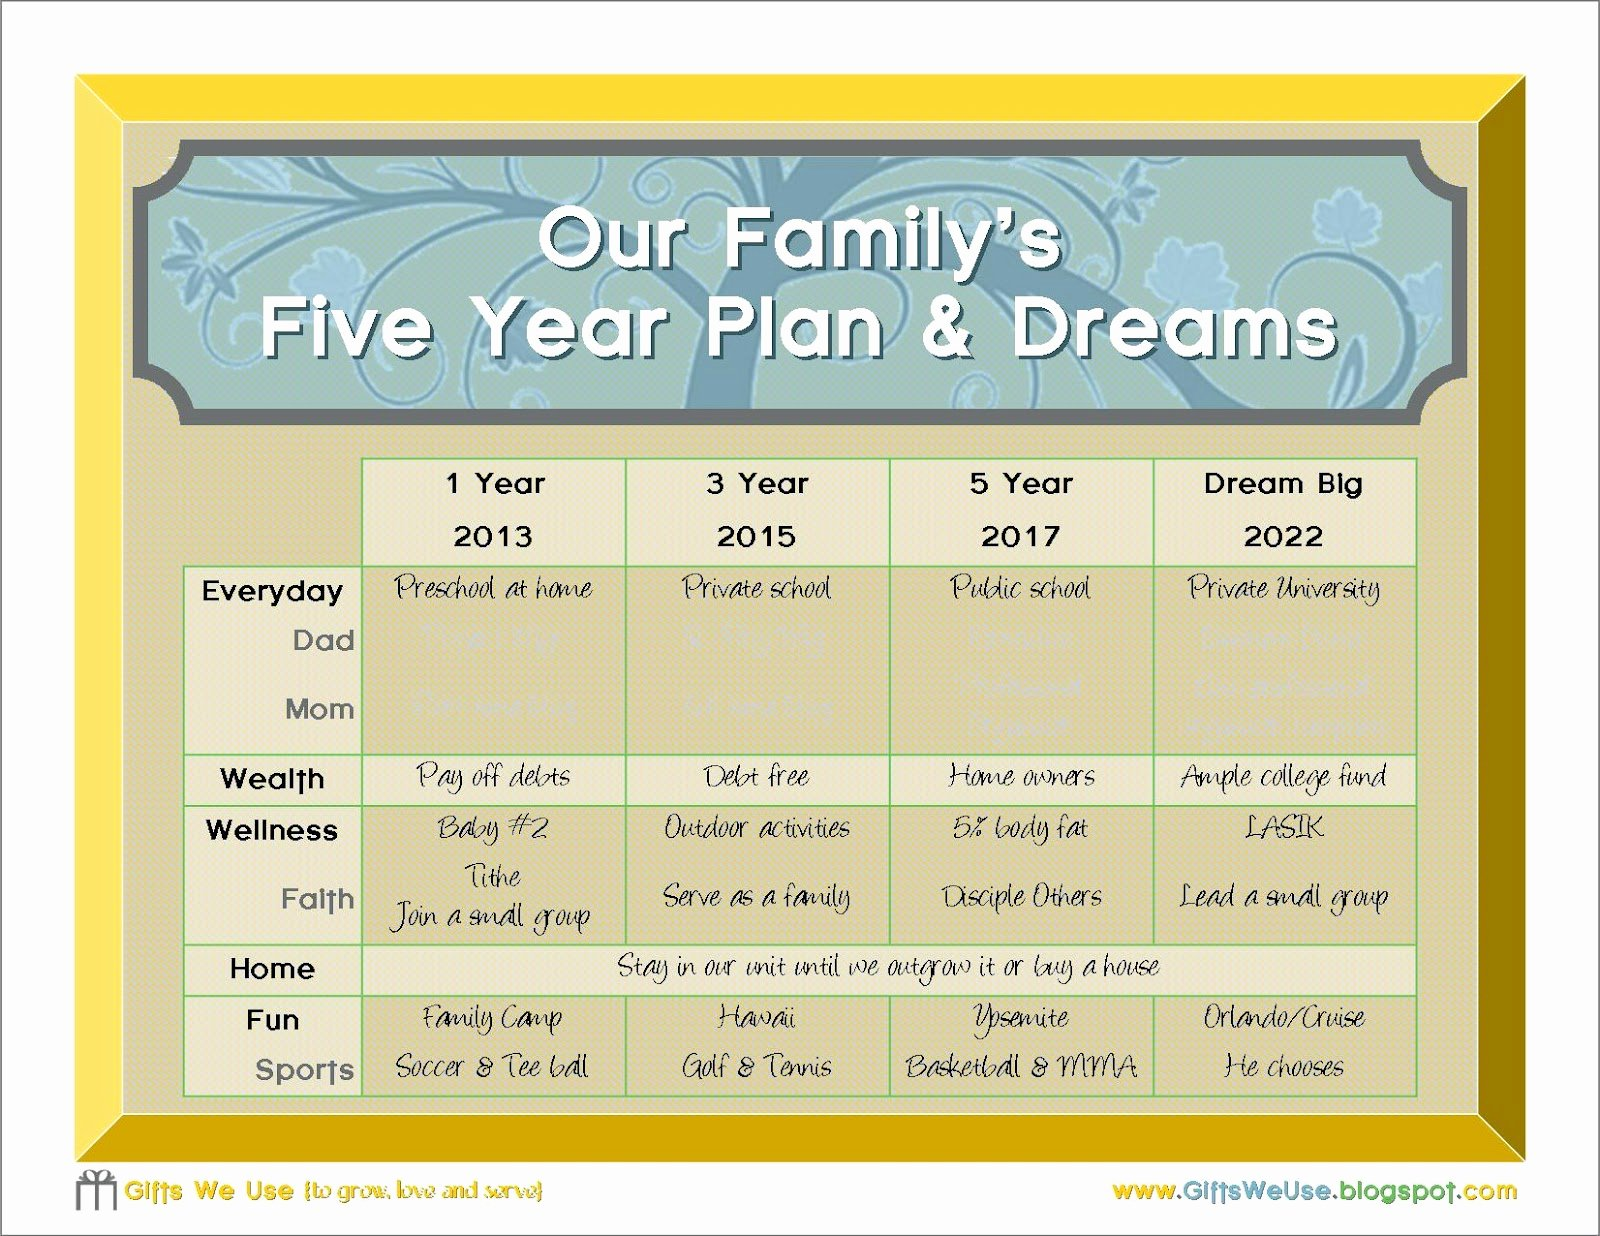 Personal 5 Year Plan Template Inspirational Gifts We Use Family 5 Year Plan & A Printable